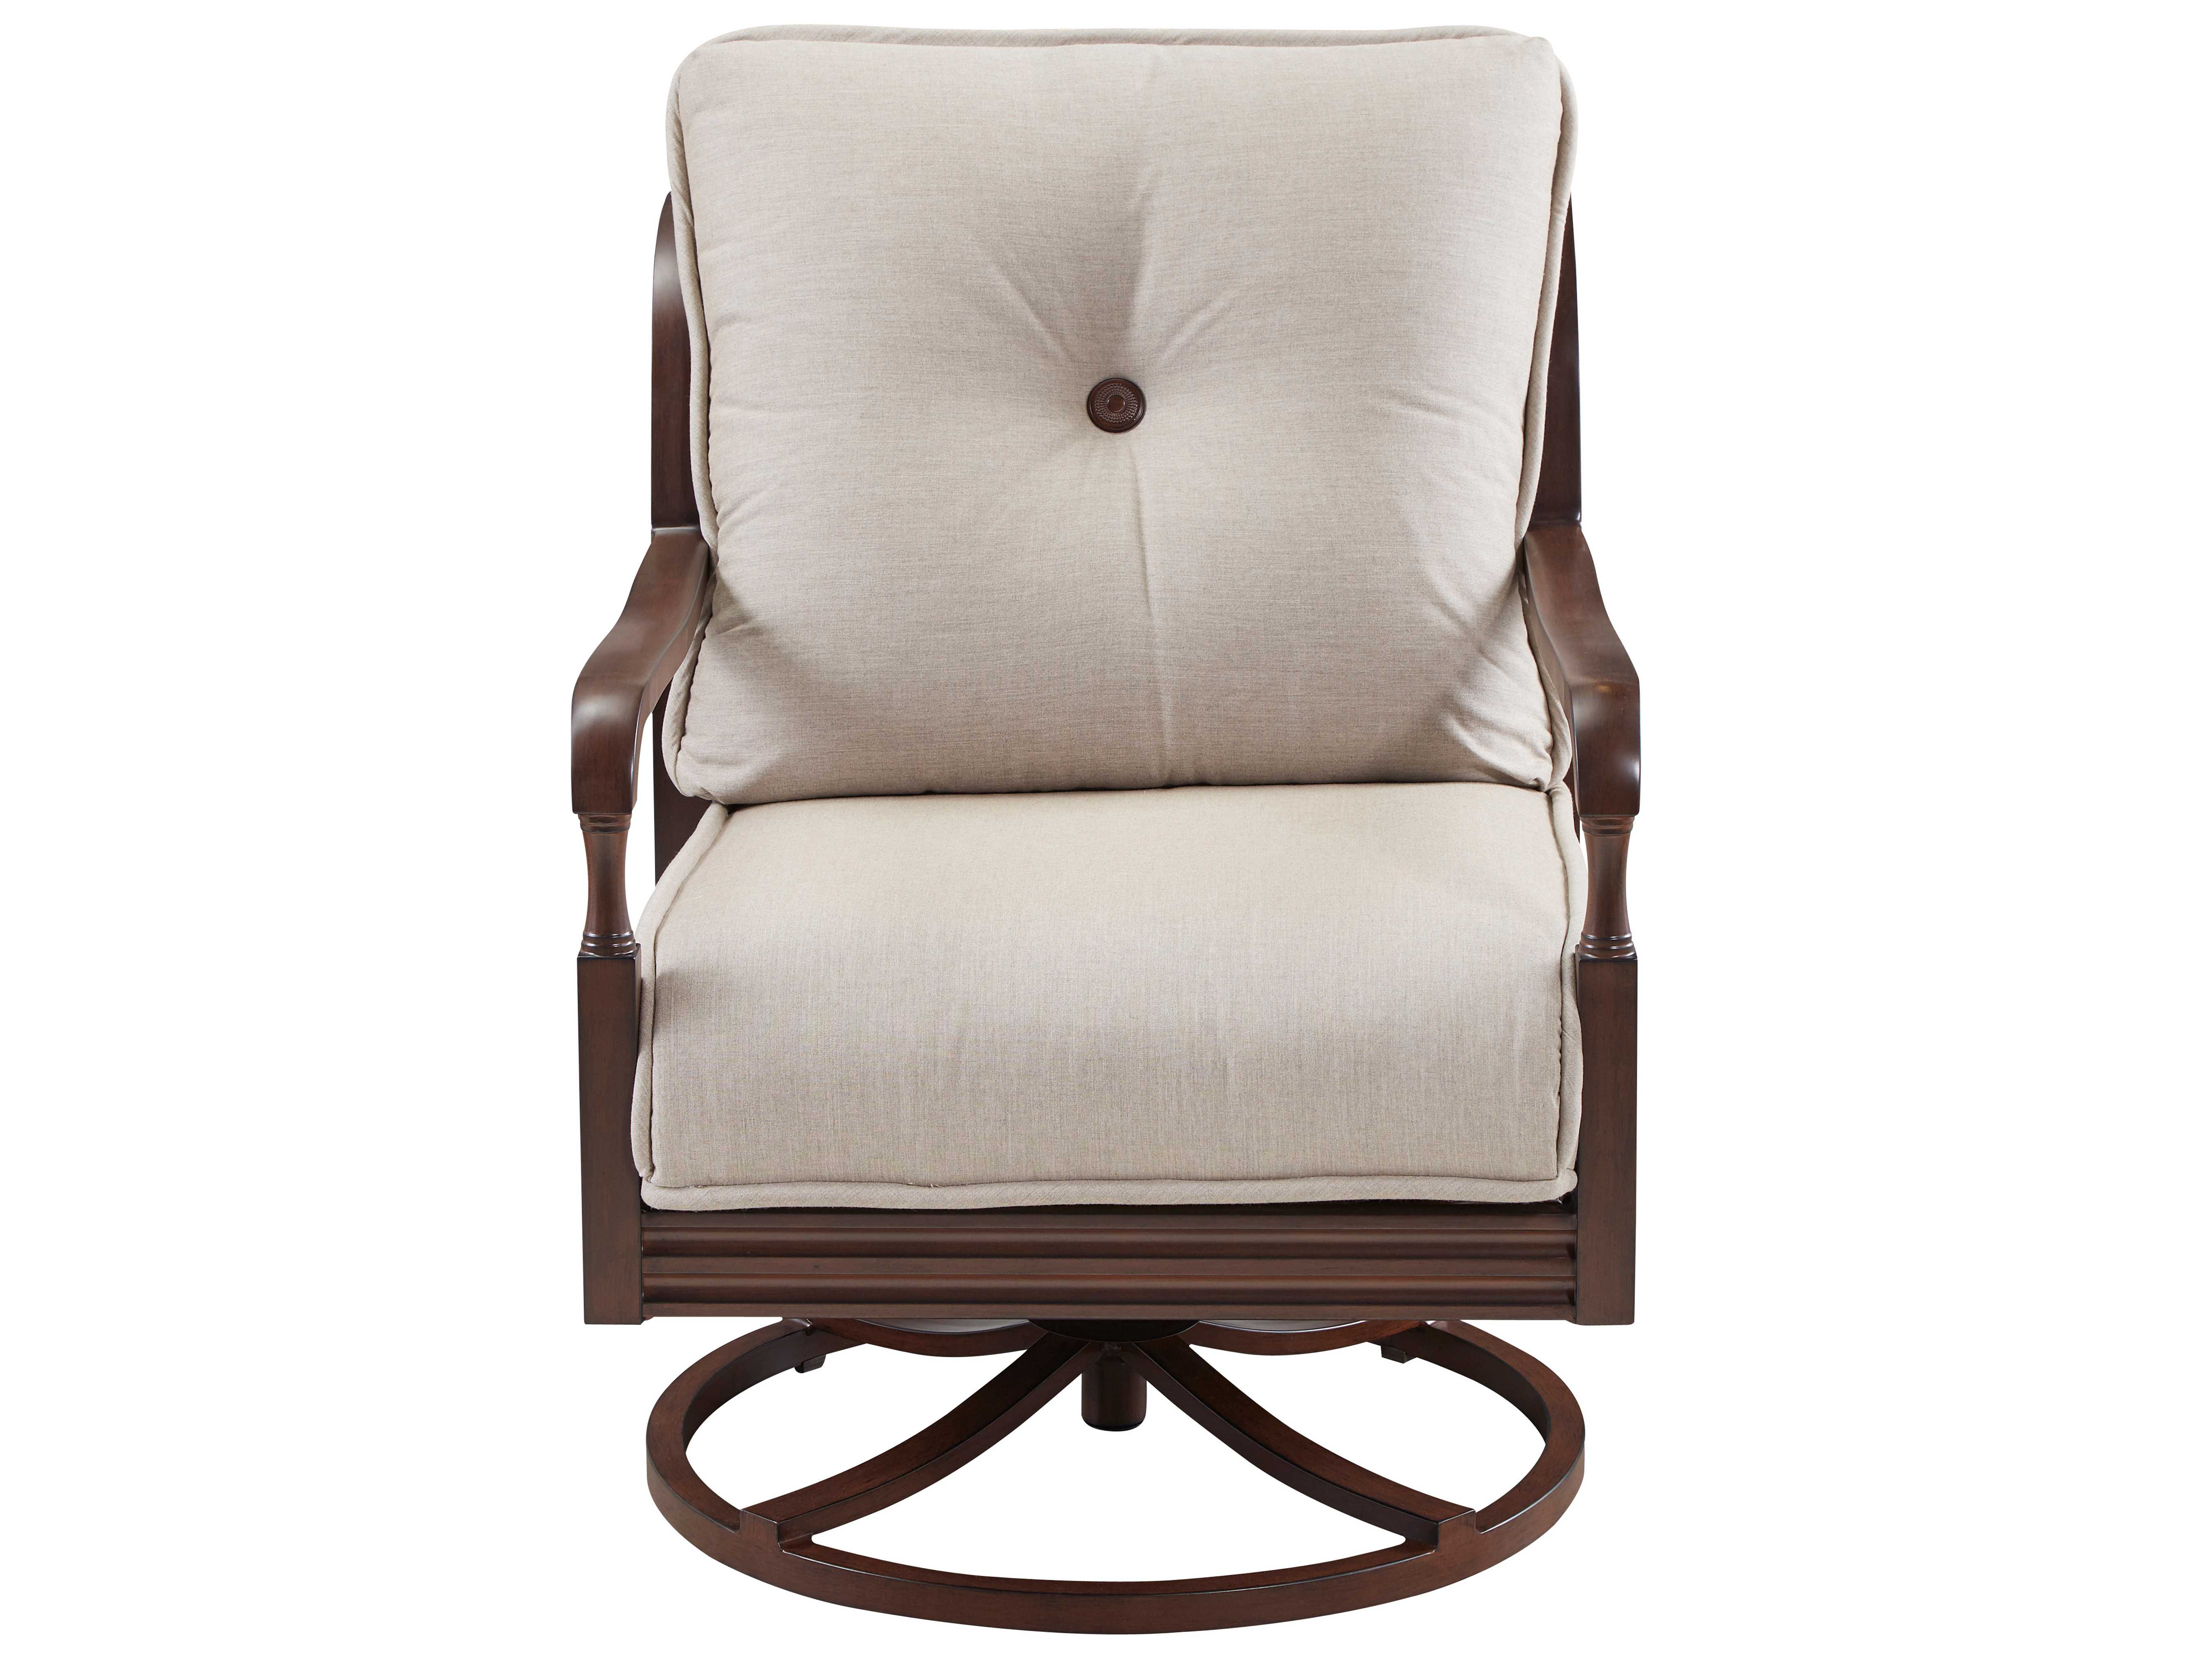 Terrific Paula Deen Outdoor River House Lounge Swivel Chair Caraccident5 Cool Chair Designs And Ideas Caraccident5Info